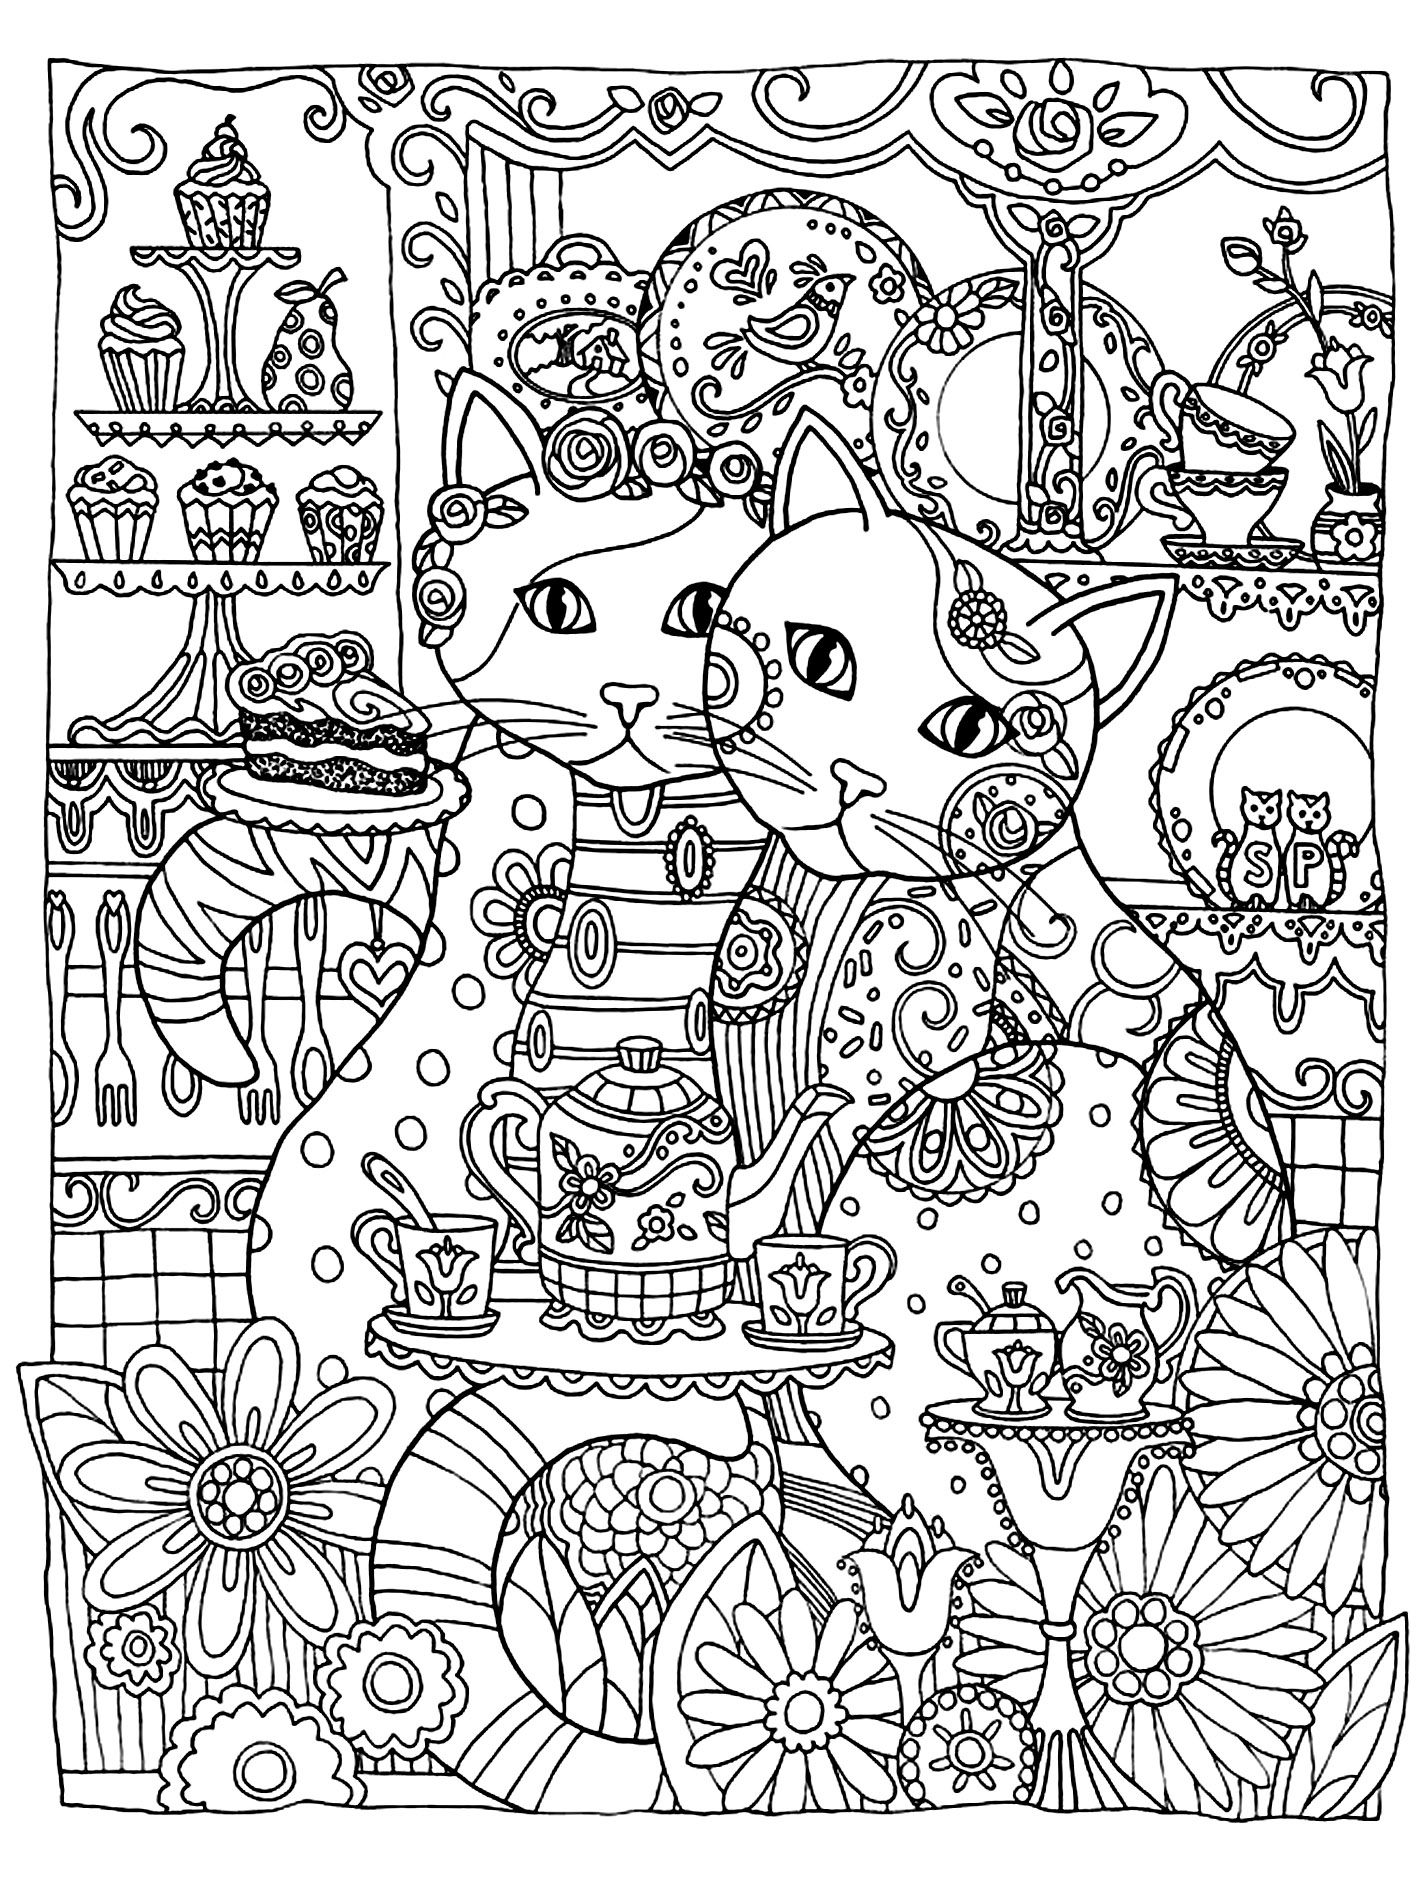 Coloring pages for adults cute - Free Coloring Page Coloring Adult Two Cute Cats Two Loving Cats